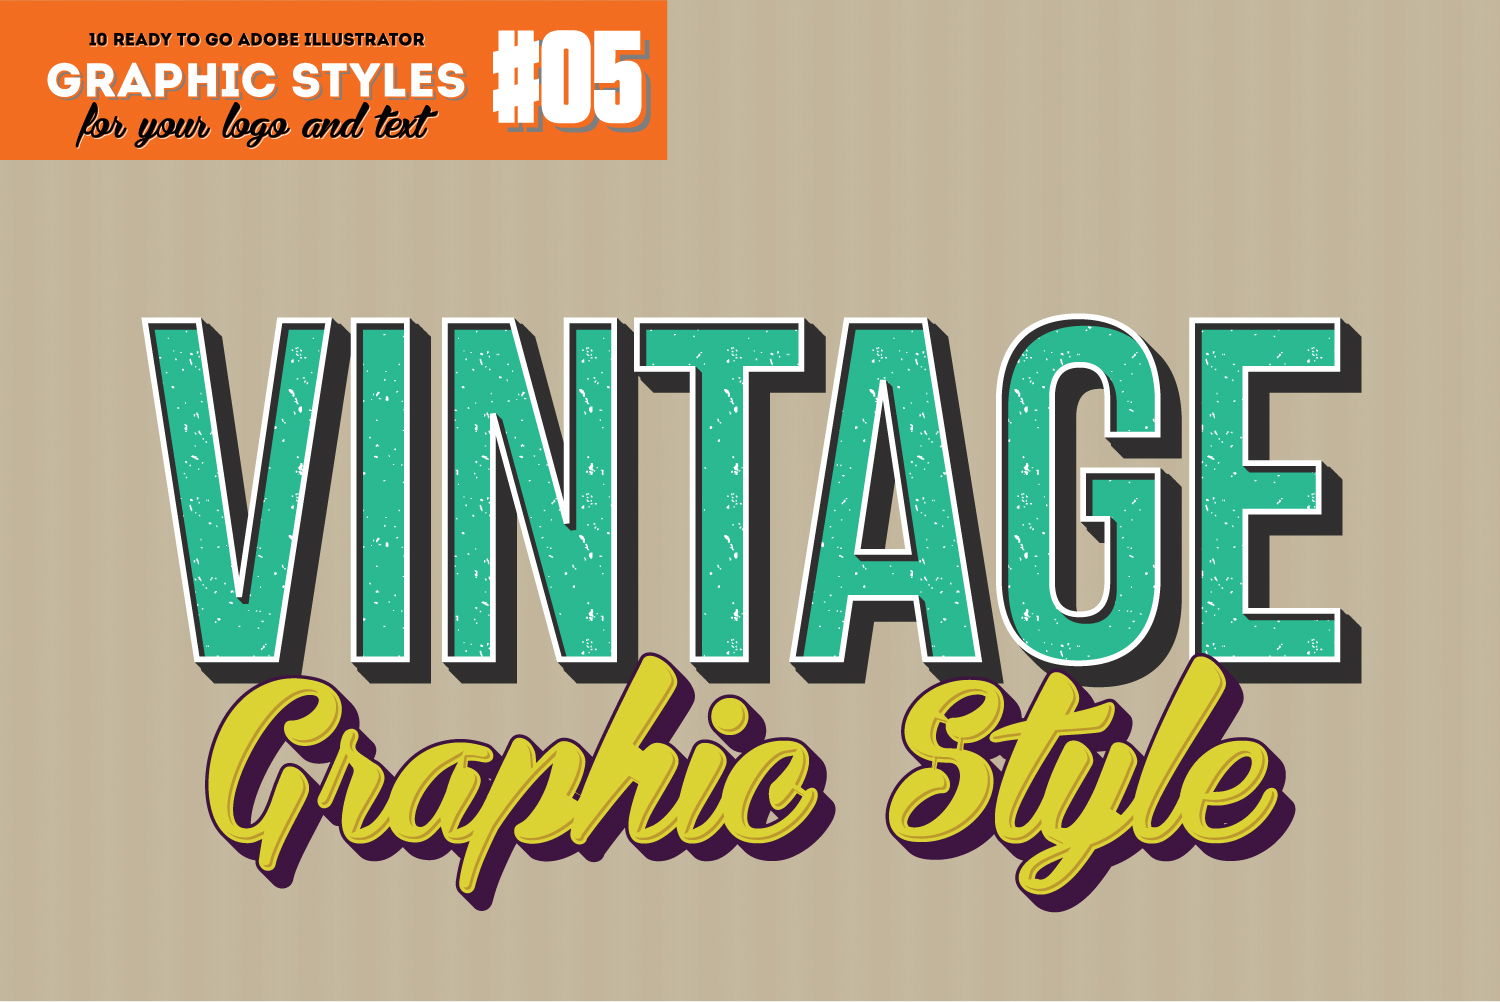 10 Retro Vintage Style for Adobe Illustrator